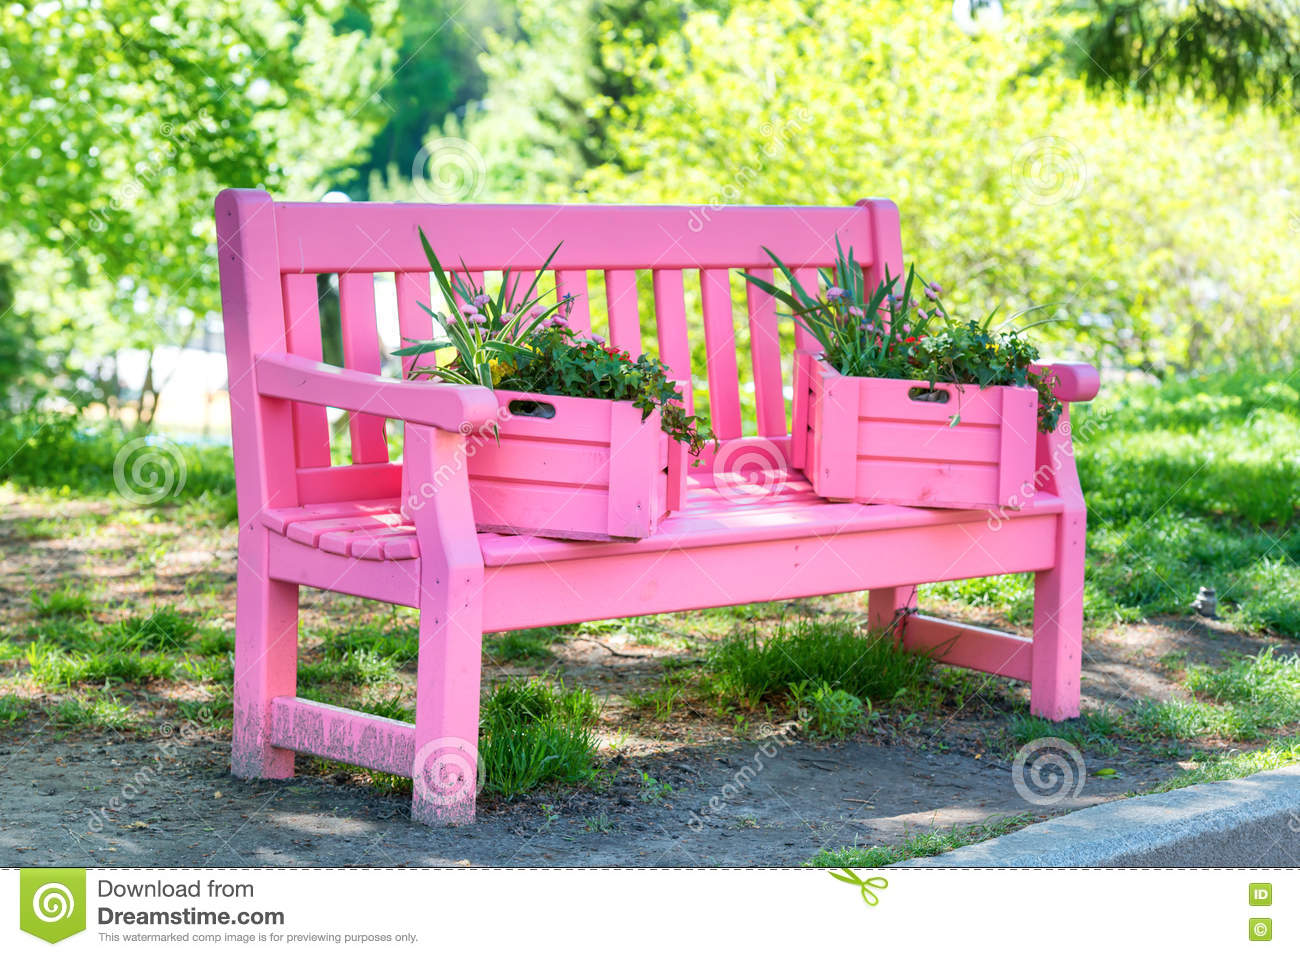 Pleasant Pink Bench In The Green Park Stock Image Image Of Garden Machost Co Dining Chair Design Ideas Machostcouk